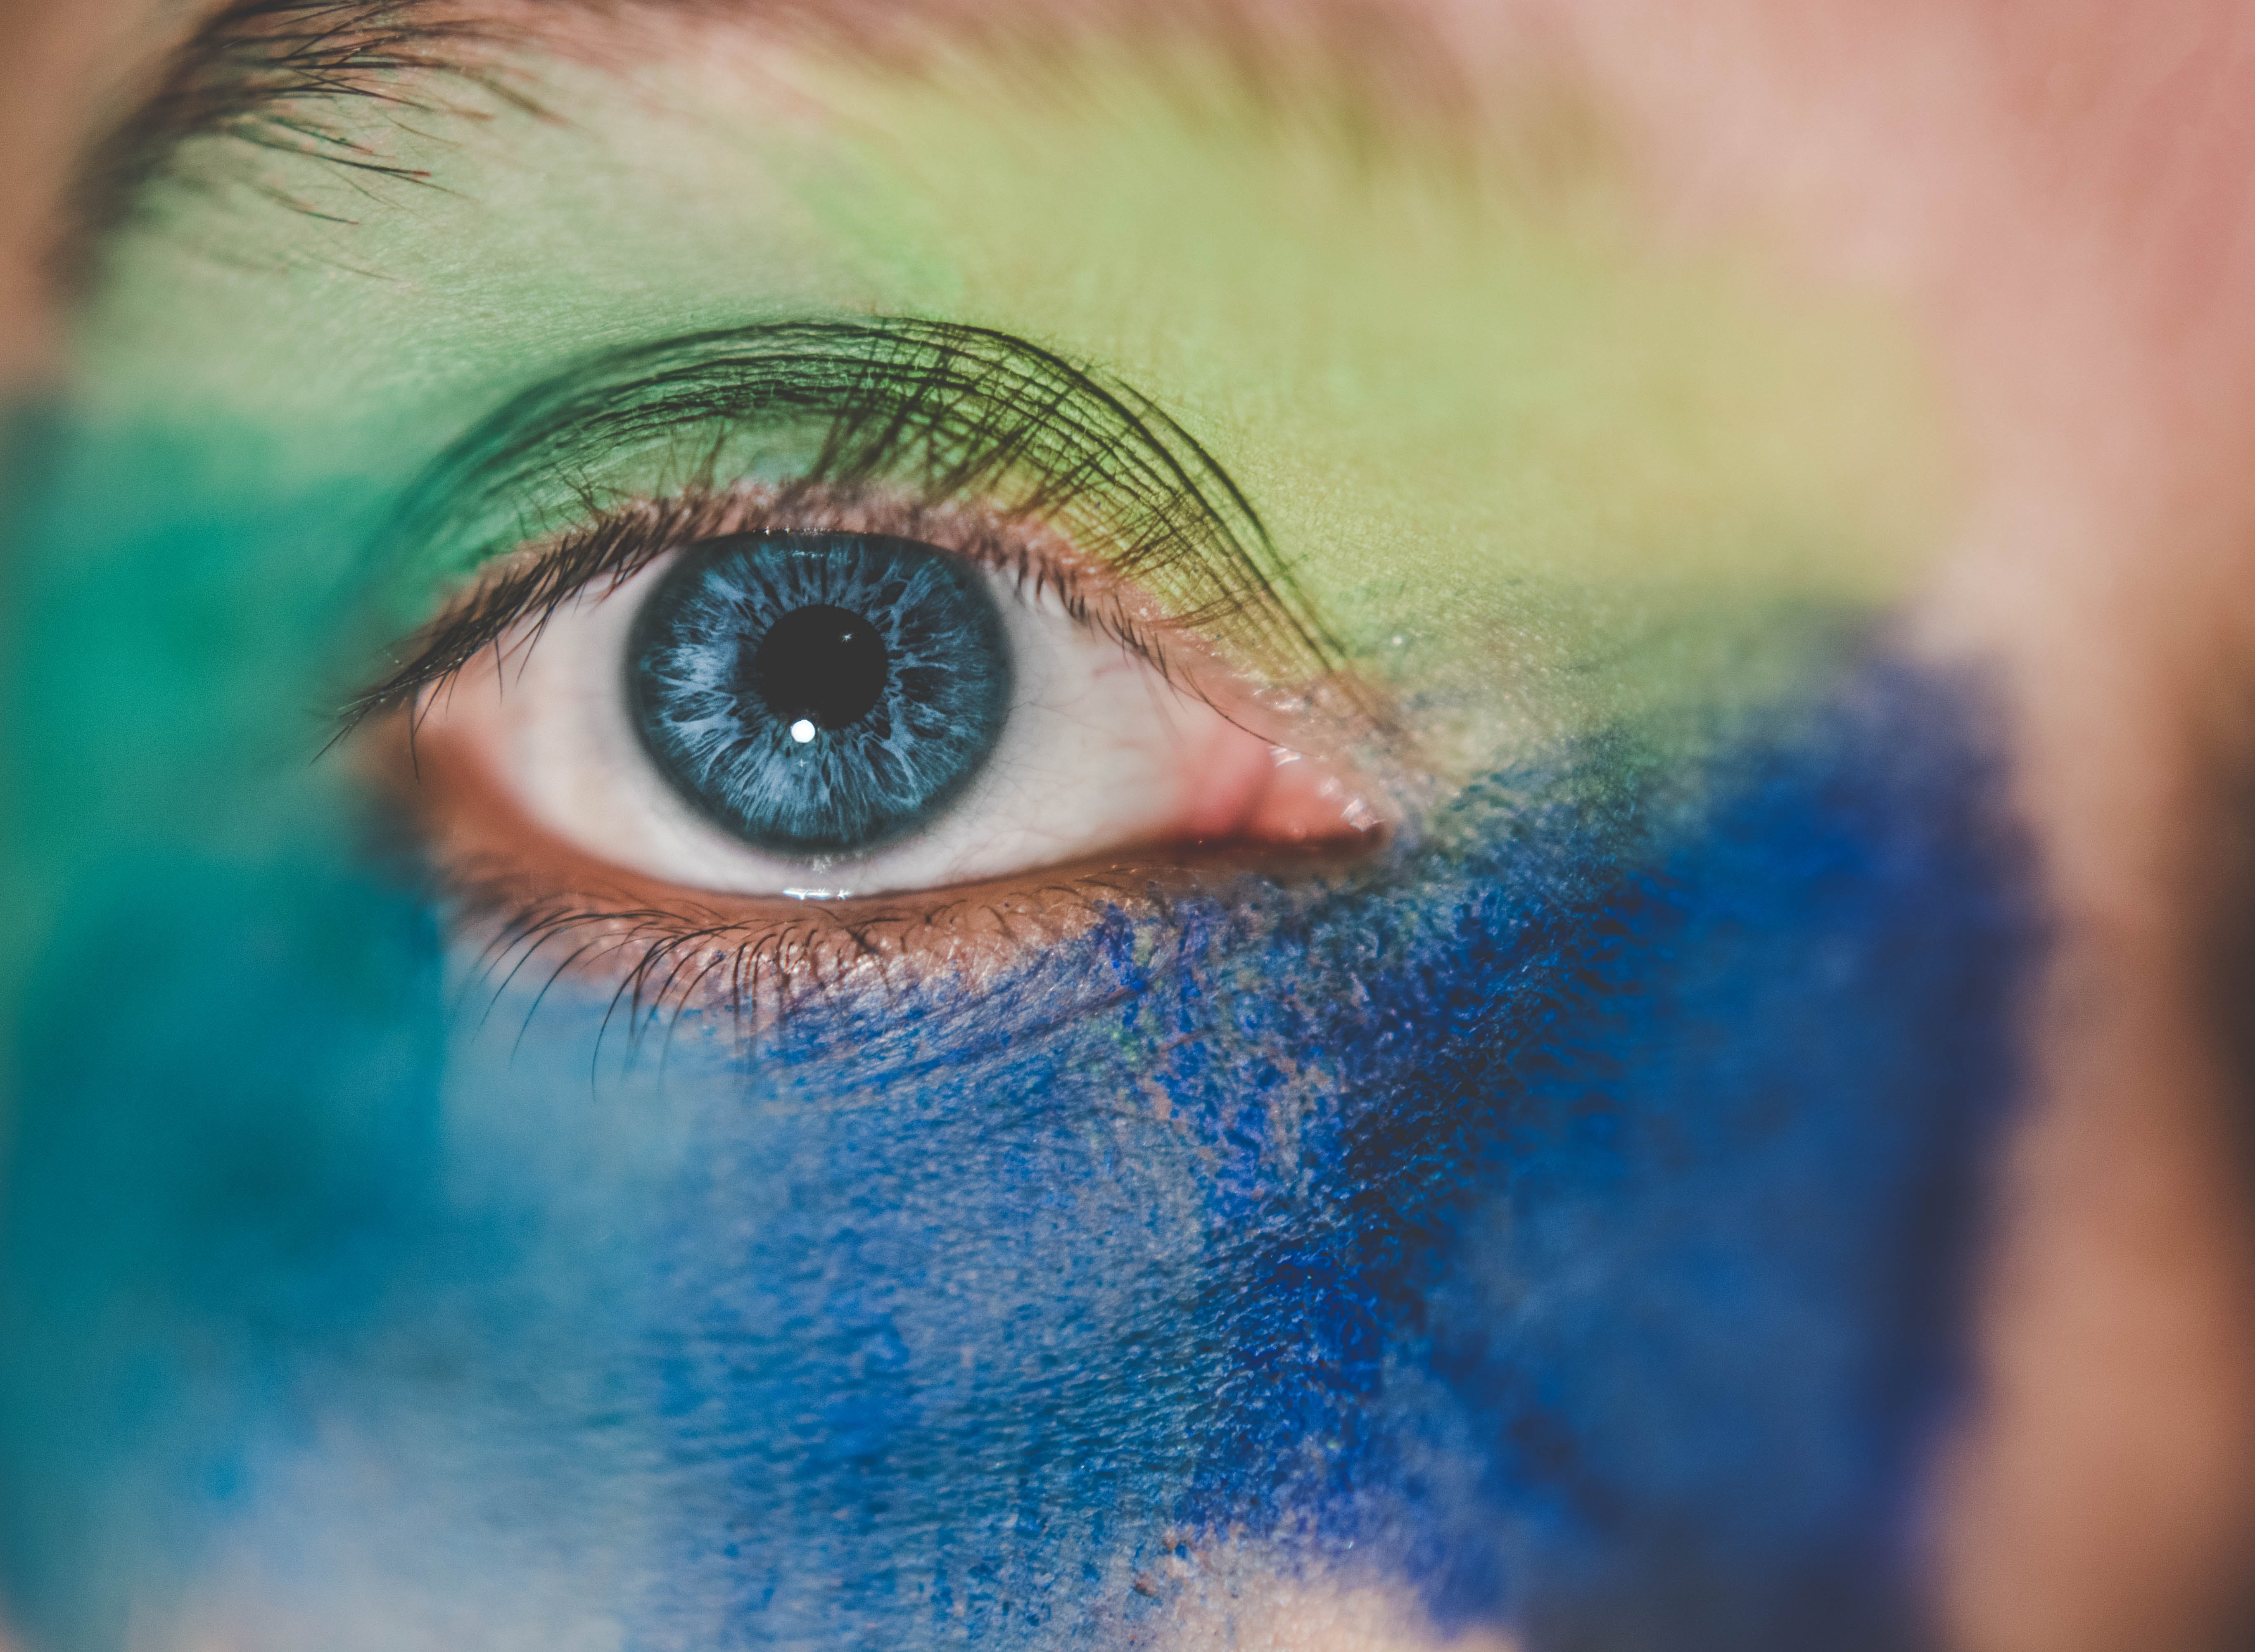 Human Eye With Blue and Green Makeup